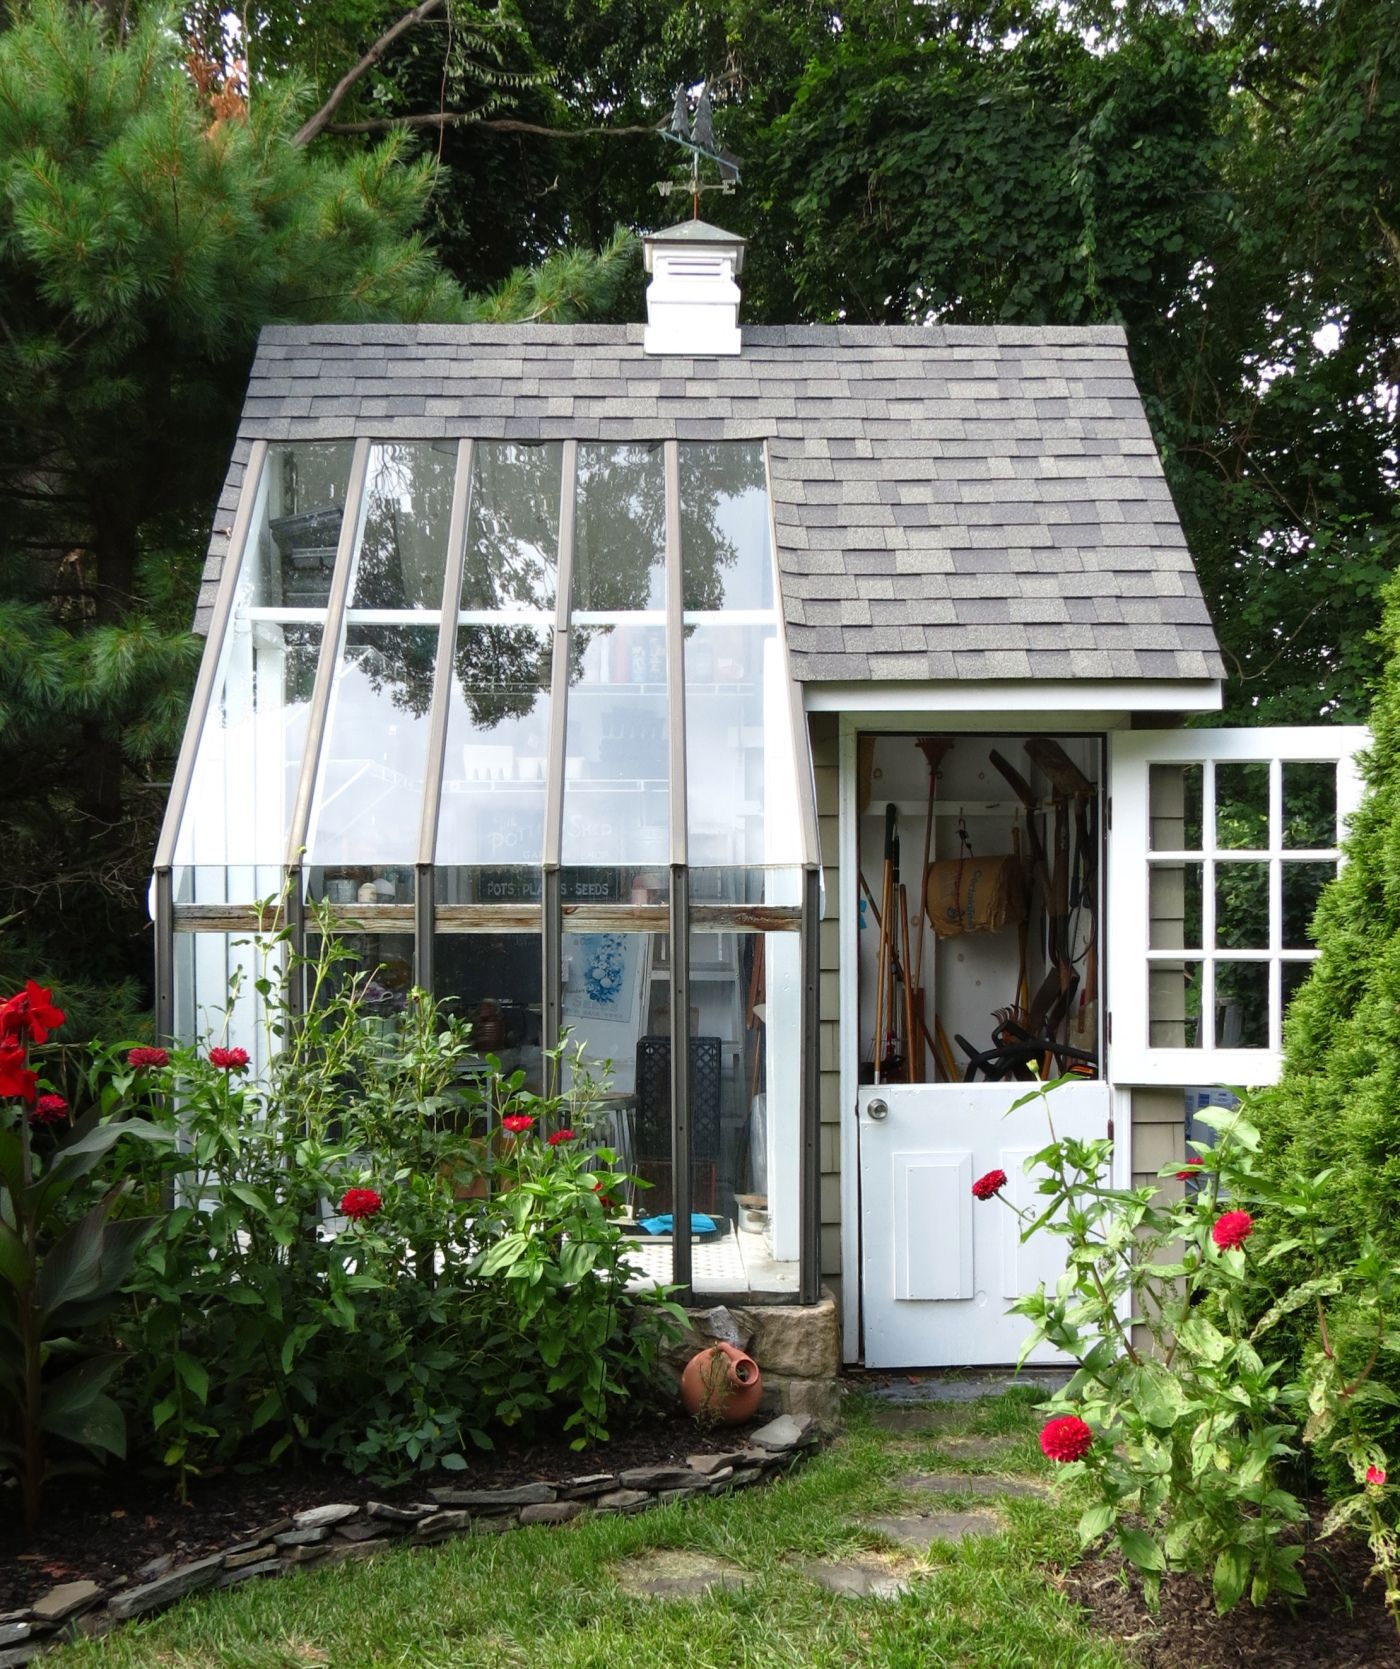 Wonderful Garden Room, With Great Well Lit Working Space. Greenhouse ...